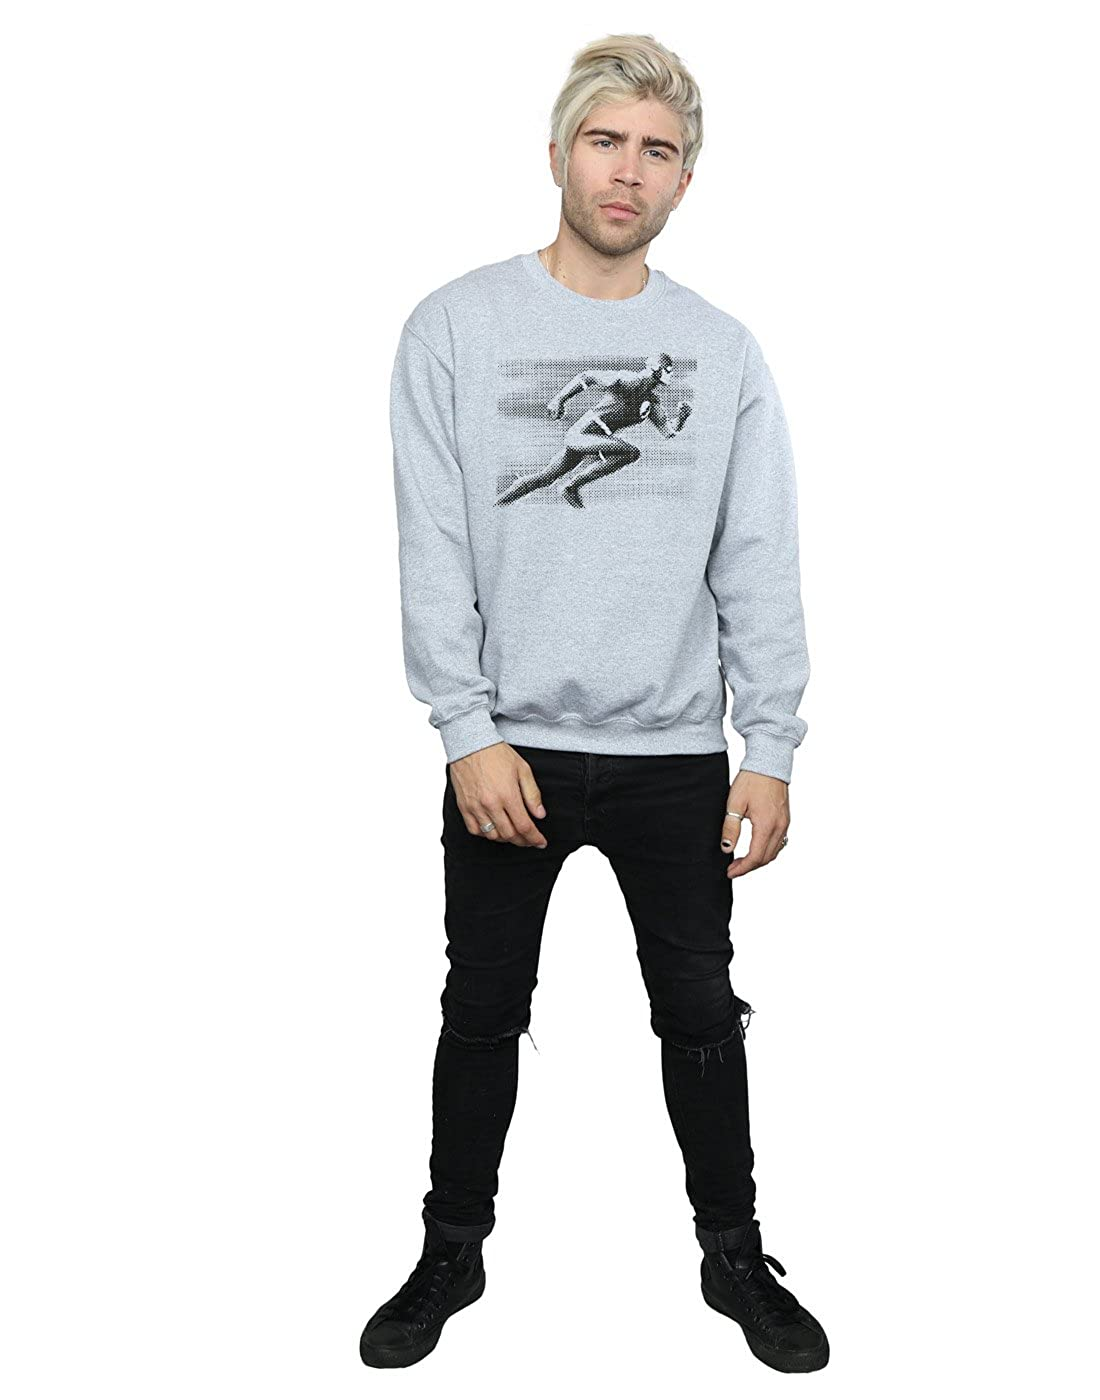 5353d4e55345 DC Comics Men s Flash Spot Racer Sweatshirt at Amazon Men s Clothing store